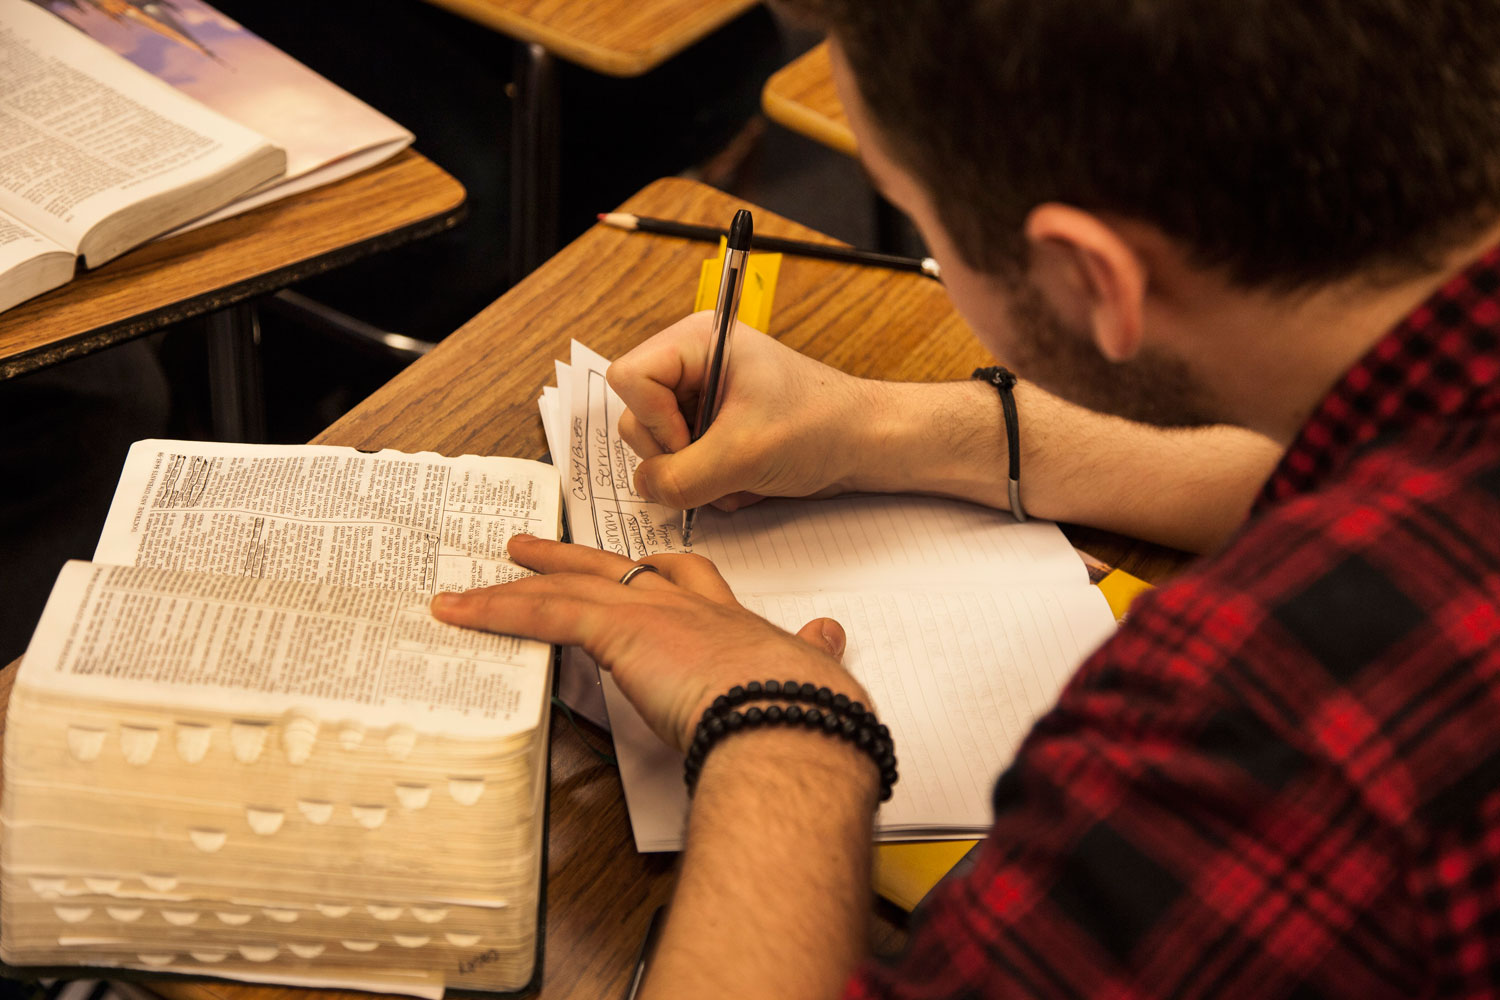 Man studying the scriptures